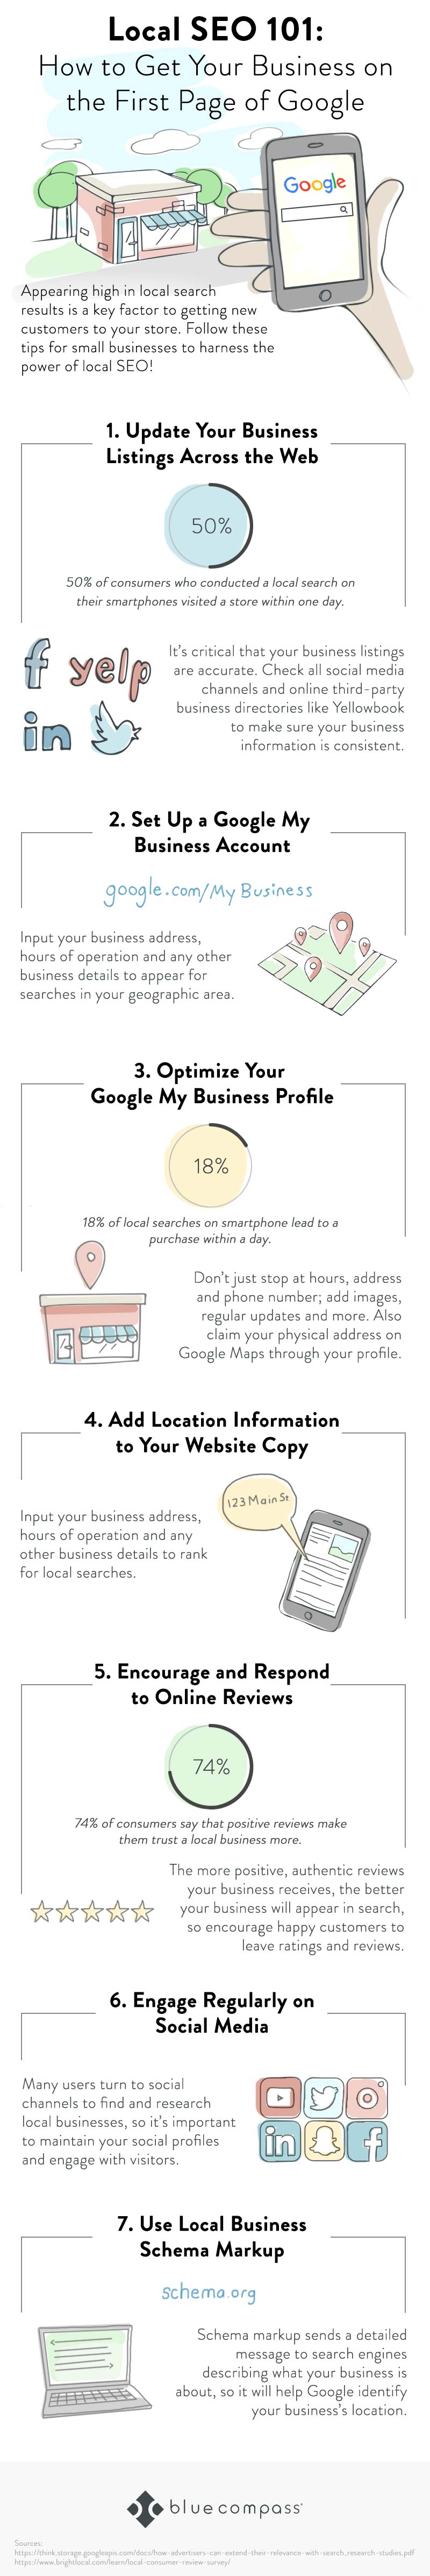 blog-local-seo-infograhpic%20(1).jpg